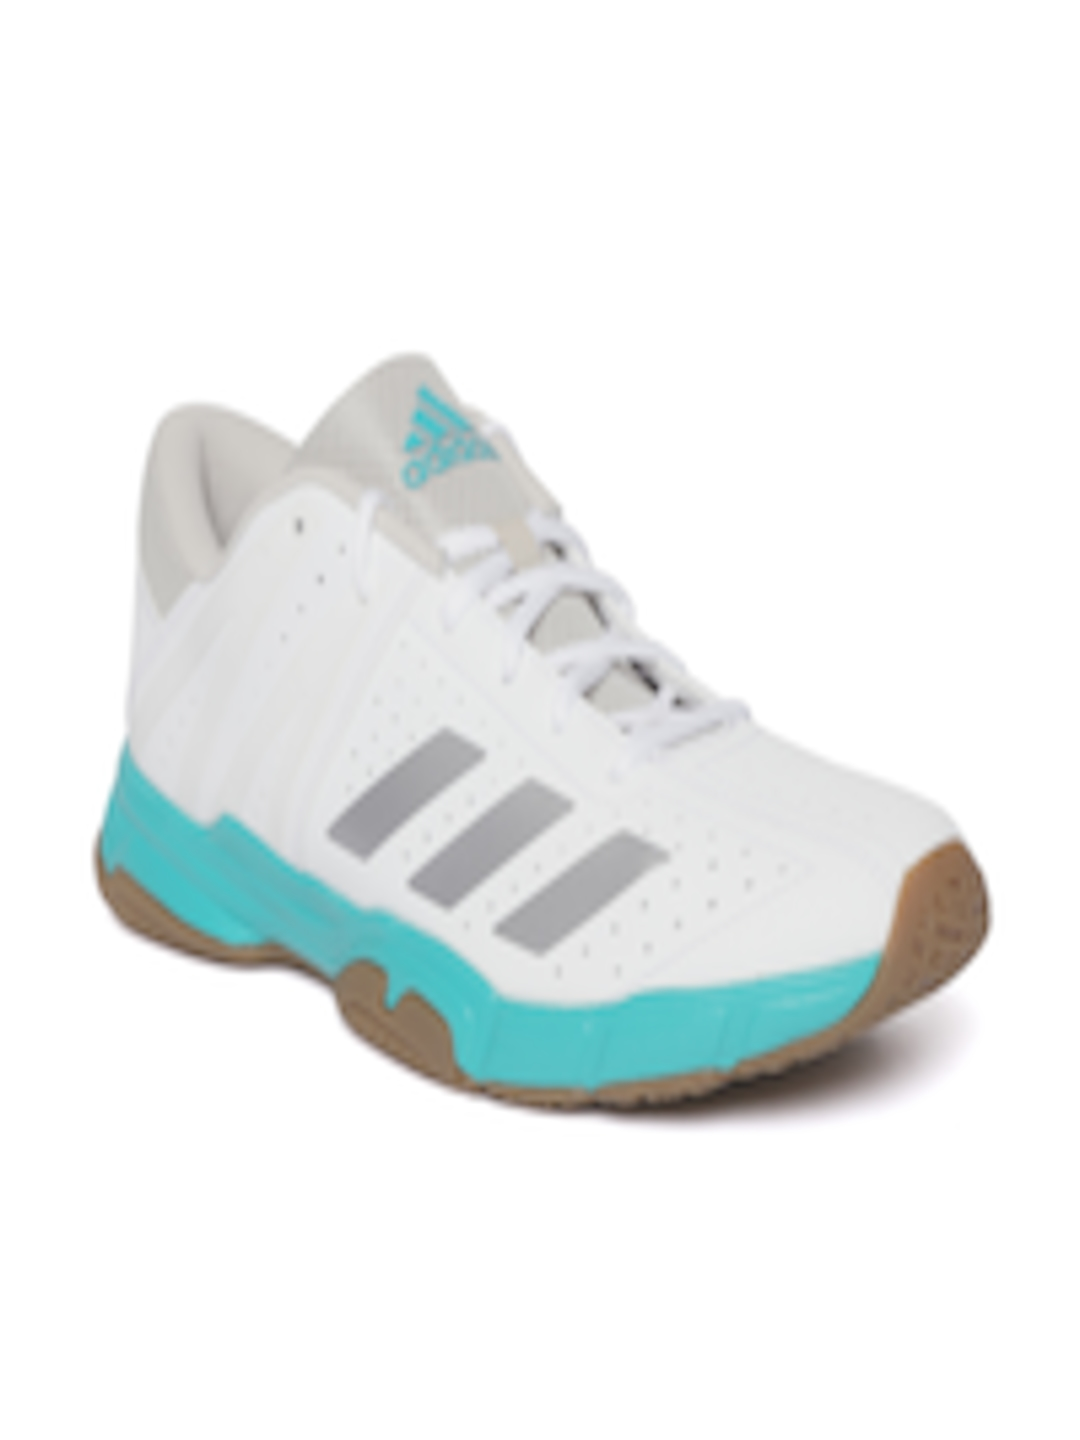 Buy ADIDAS Unisex White Badminton Shoes - Sports Shoes for Unisex 6844027  c403ff352